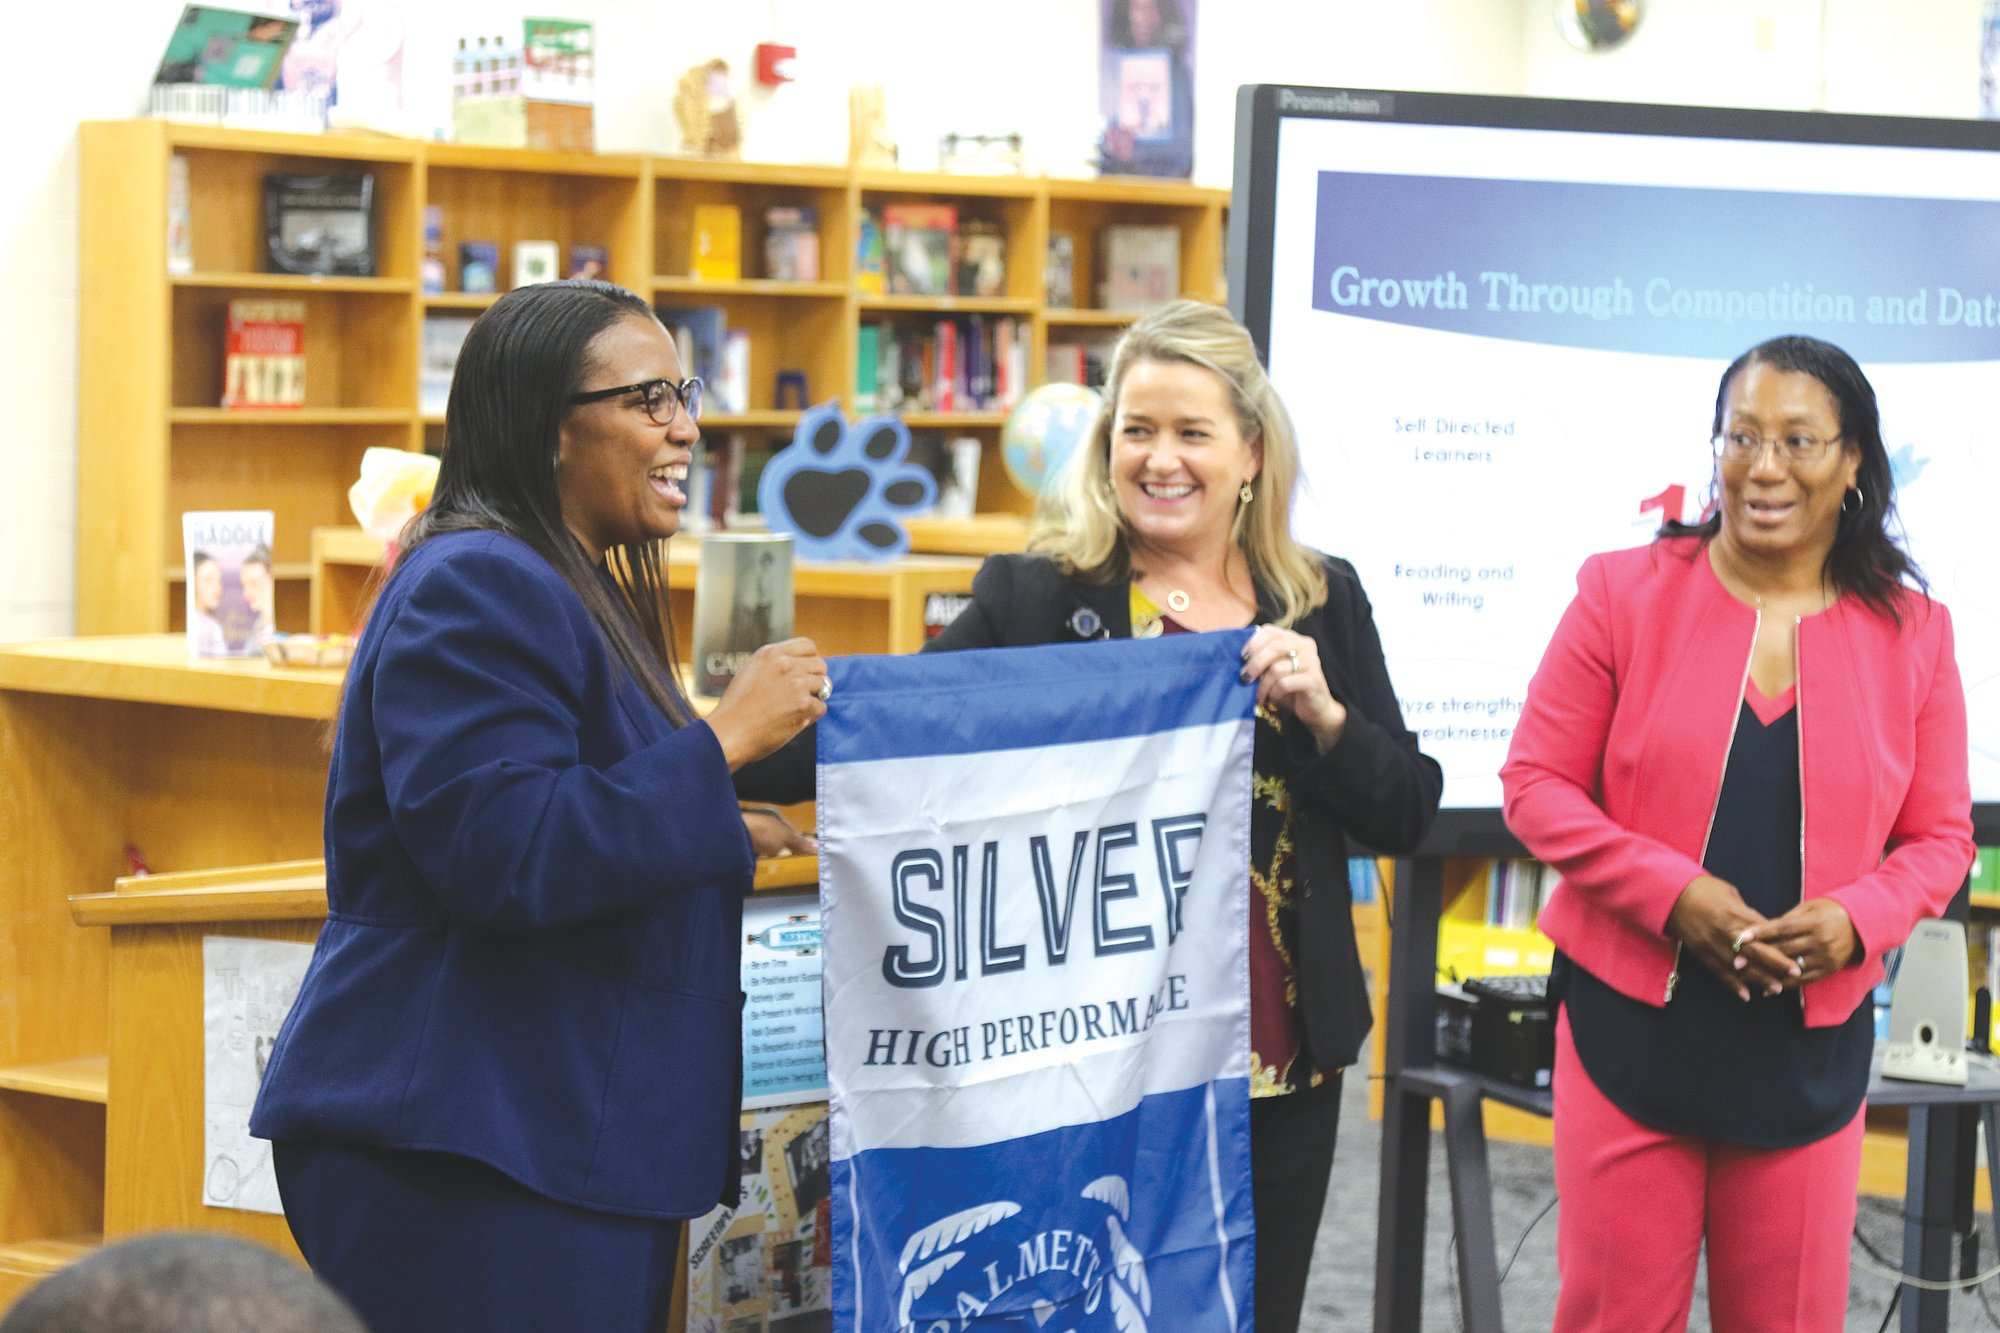 From left, Hillcrest Middle School Principal Tarsha Staggers and Sumter School District Chief of Schools Brenda Hafner share a light moment Wednesday during the banner presentation as Superintendent Penelope Martin-Knox looks on in the school's media center.